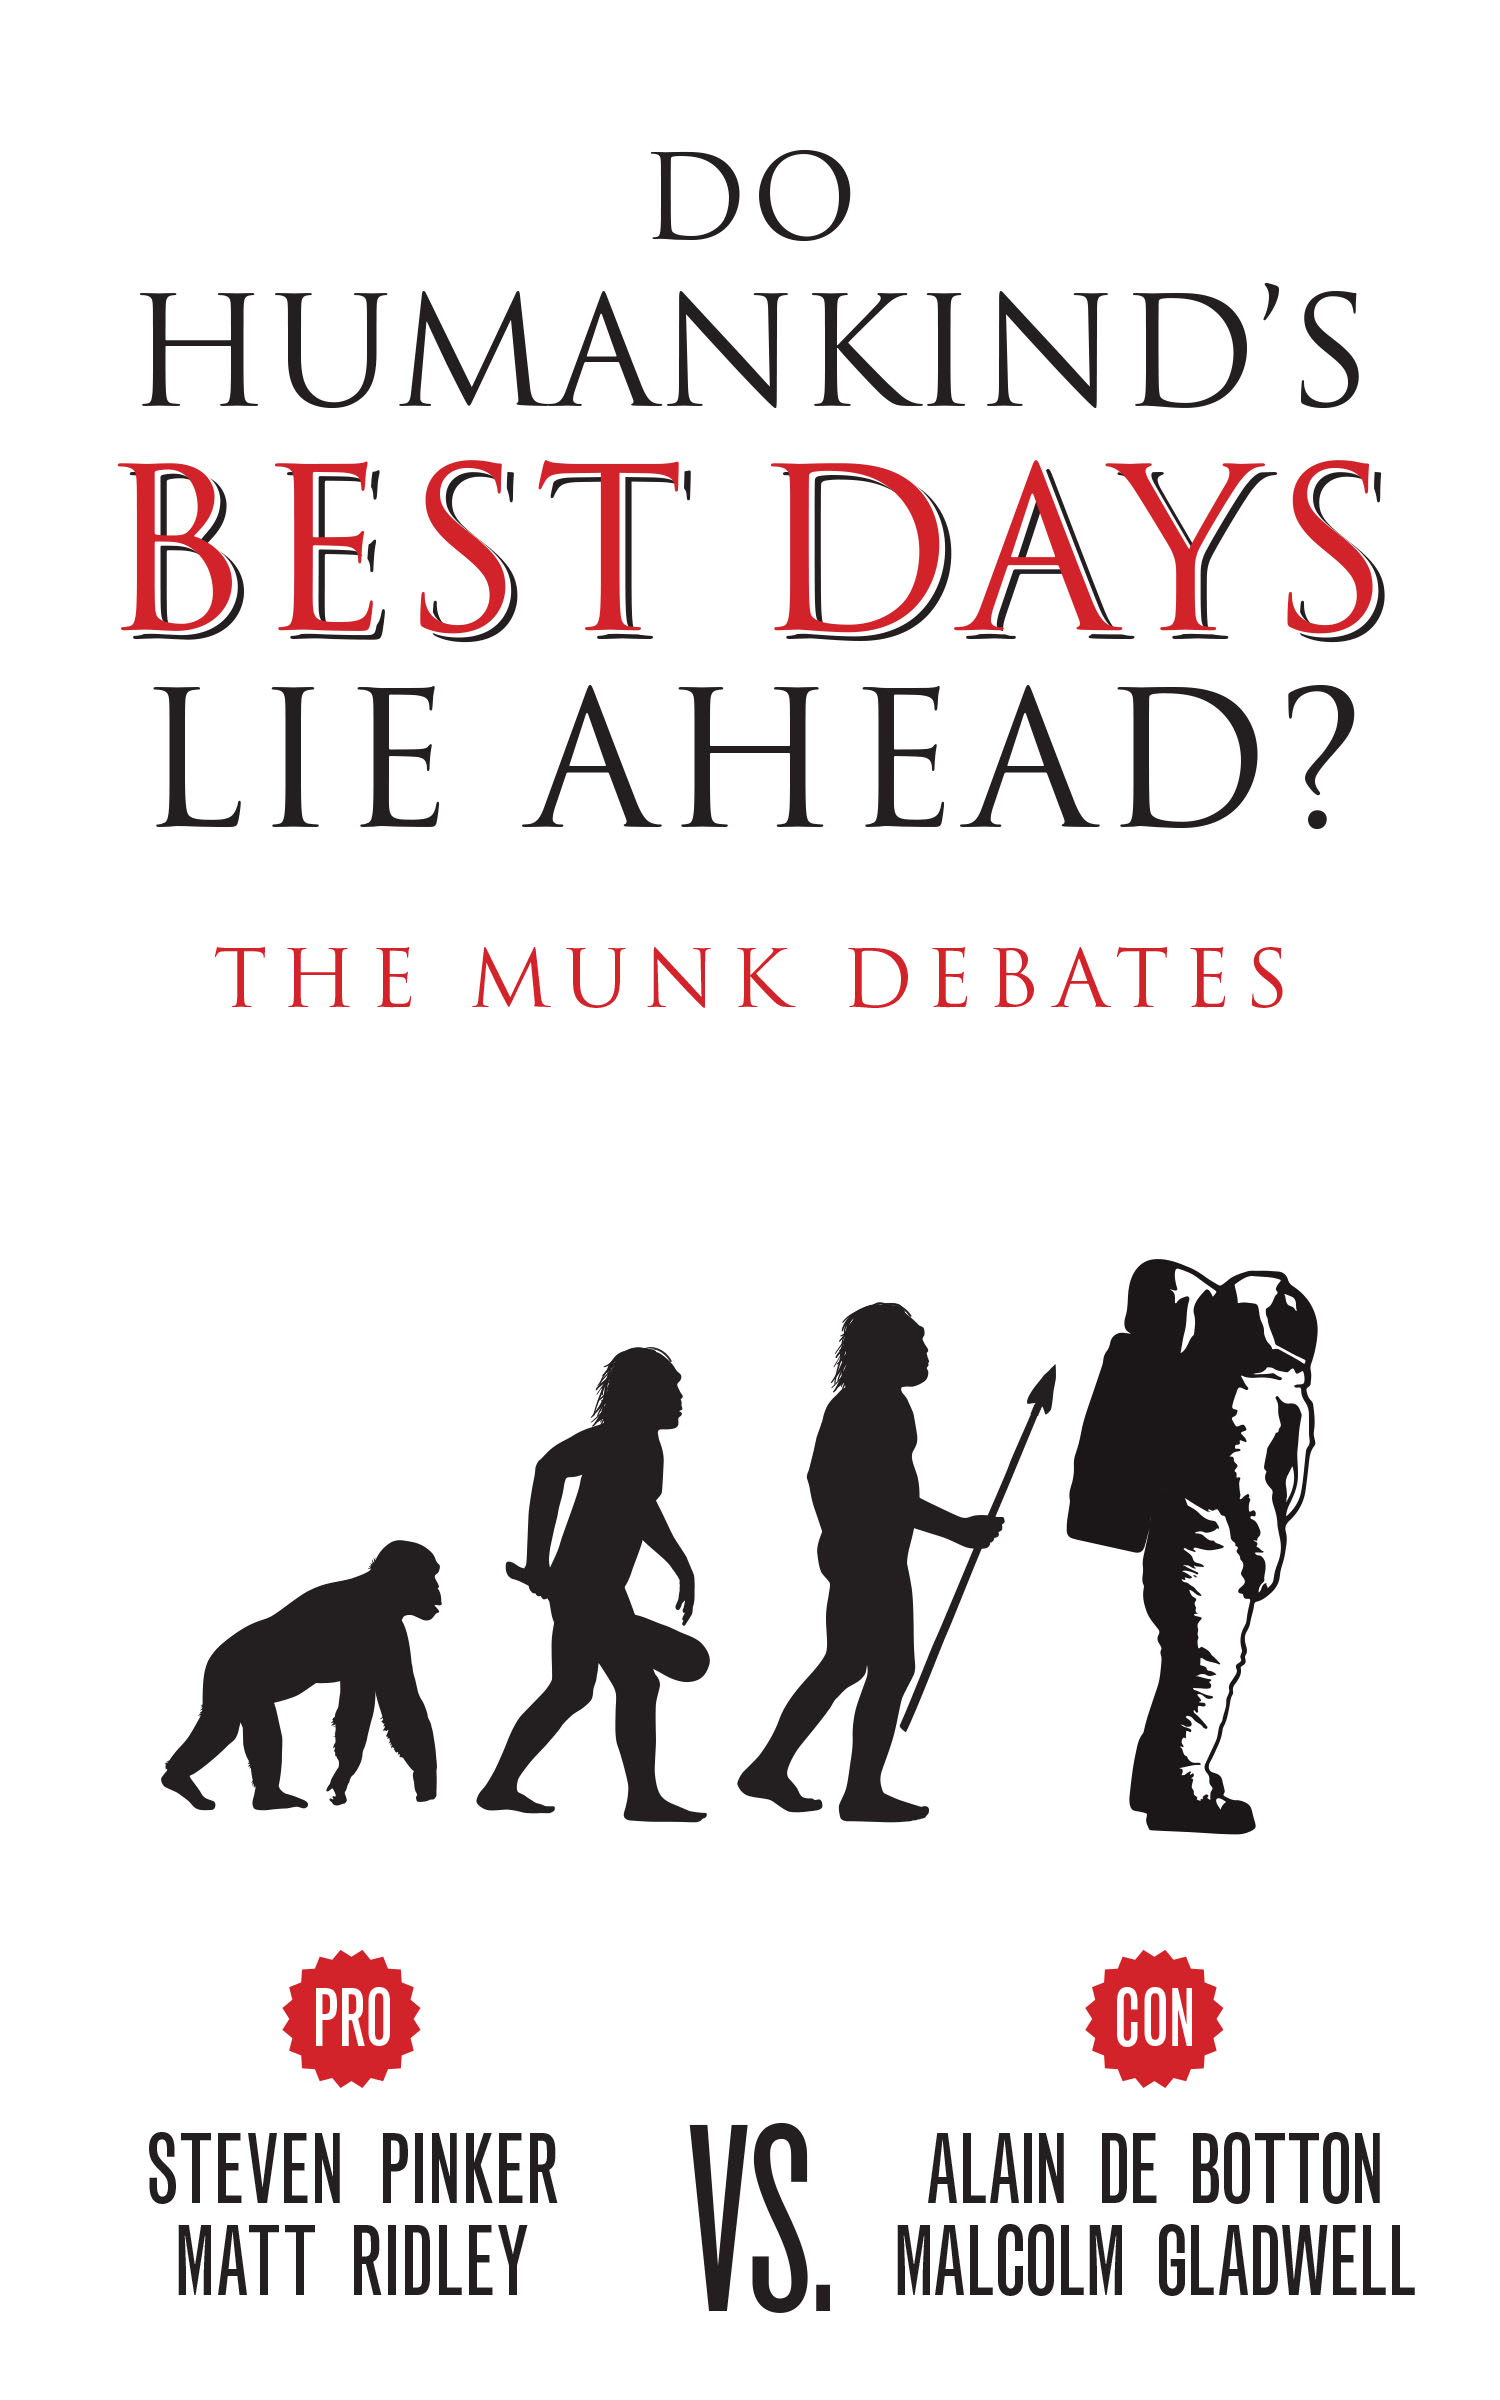 Do Humankind's Best Days Lie Ahead?, Malcolm Gladwell